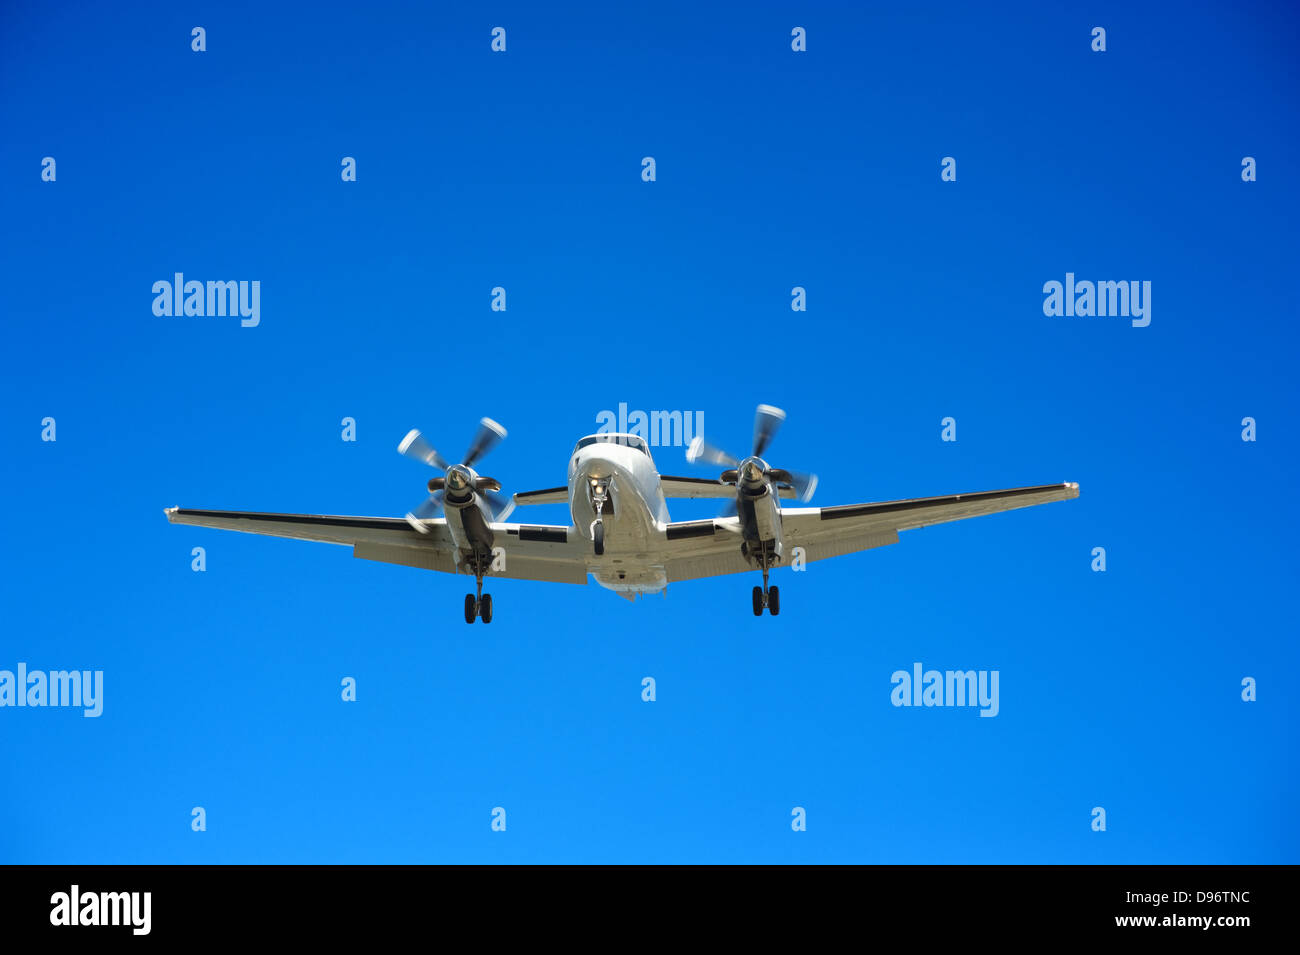 Twin engine propeller airplane approaching for landing - Stock Image